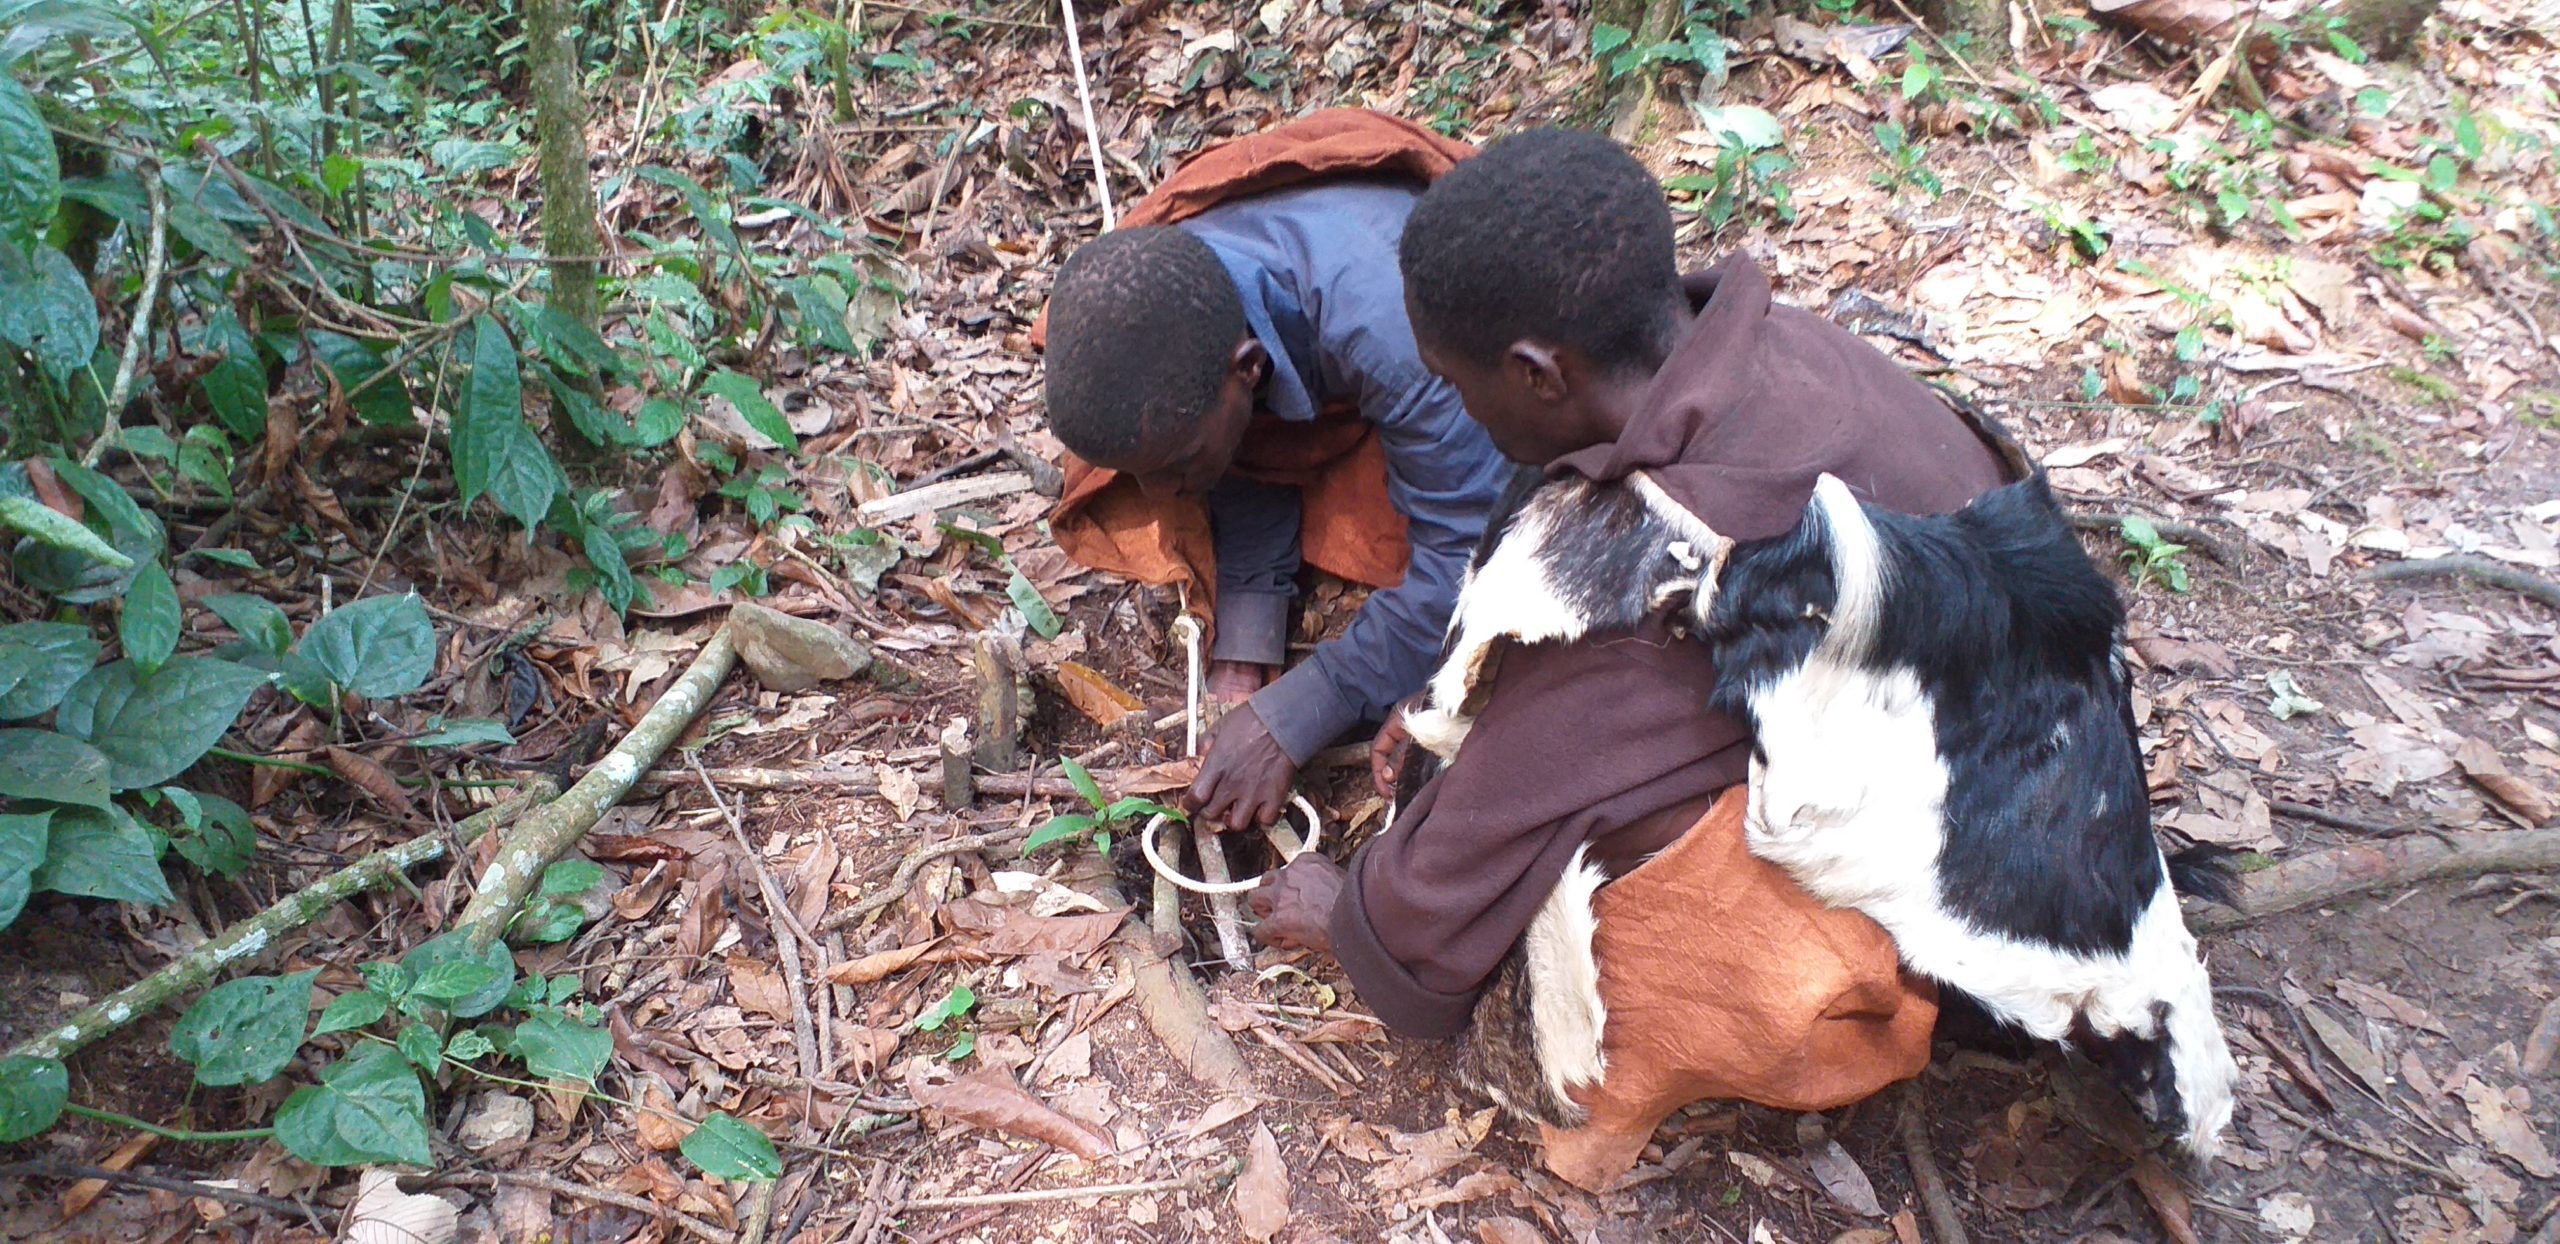 seen on our extraordinary Uganda safari Batwa Pygmies making fire